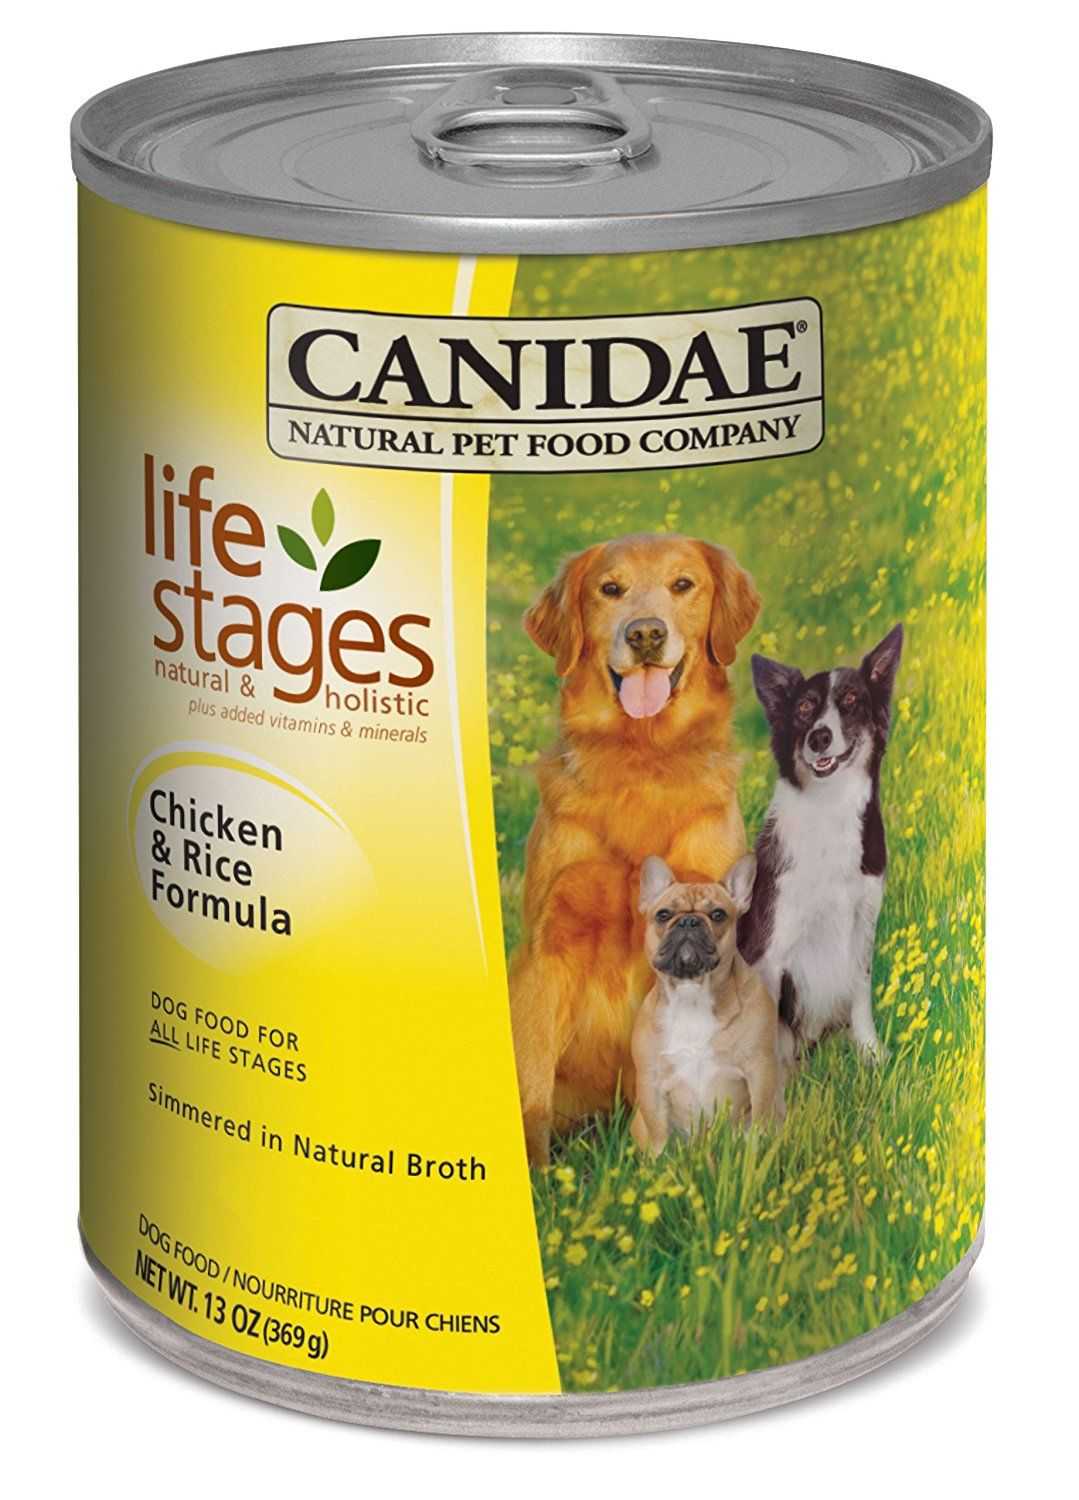 Canidae Life Stages Dog Food Chicken and Rice 13 oz